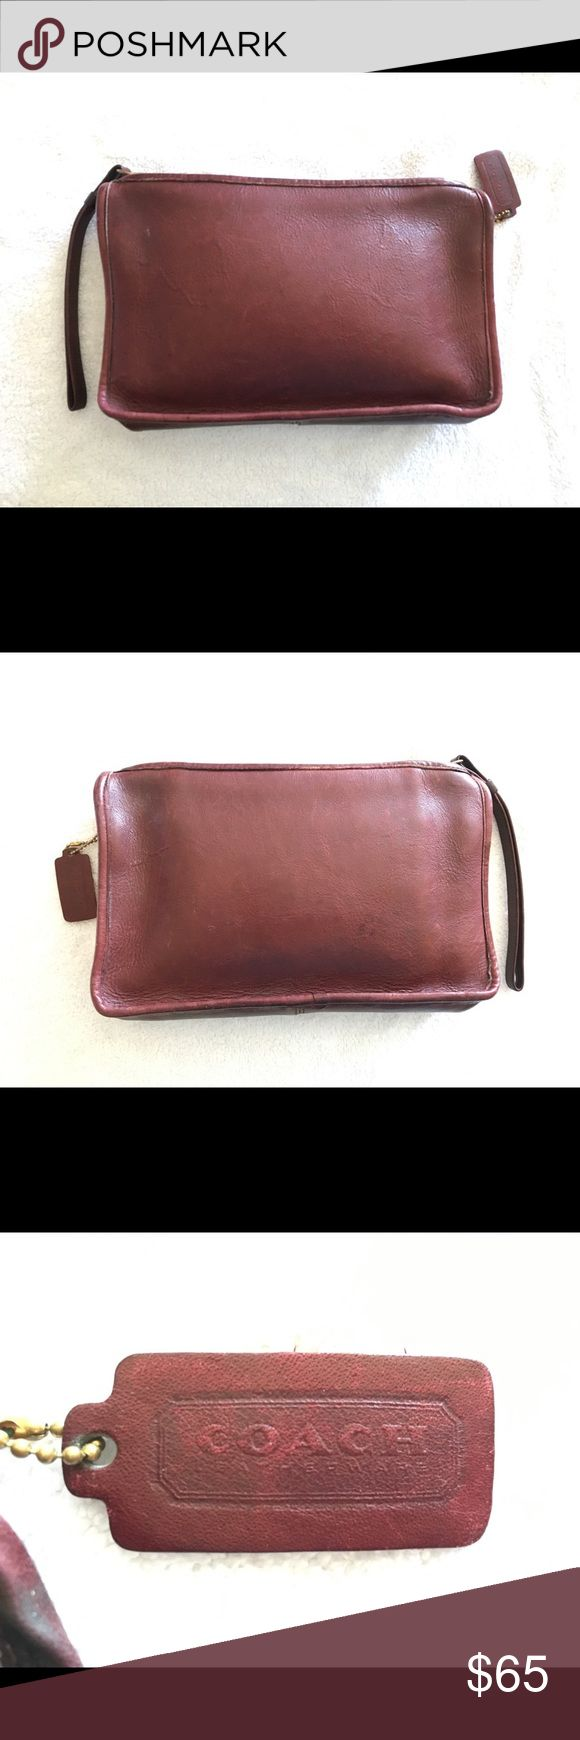 Coach Vintage Burgundy Leather Clutch New York USA Coach Vintage Burgundy Leather Clutch - made in New York!  Gorgeous burgundy leather   Thick brass zipper  Brass rings on the sides for a strap (not included) Coach Bags Clutches & Wristlets